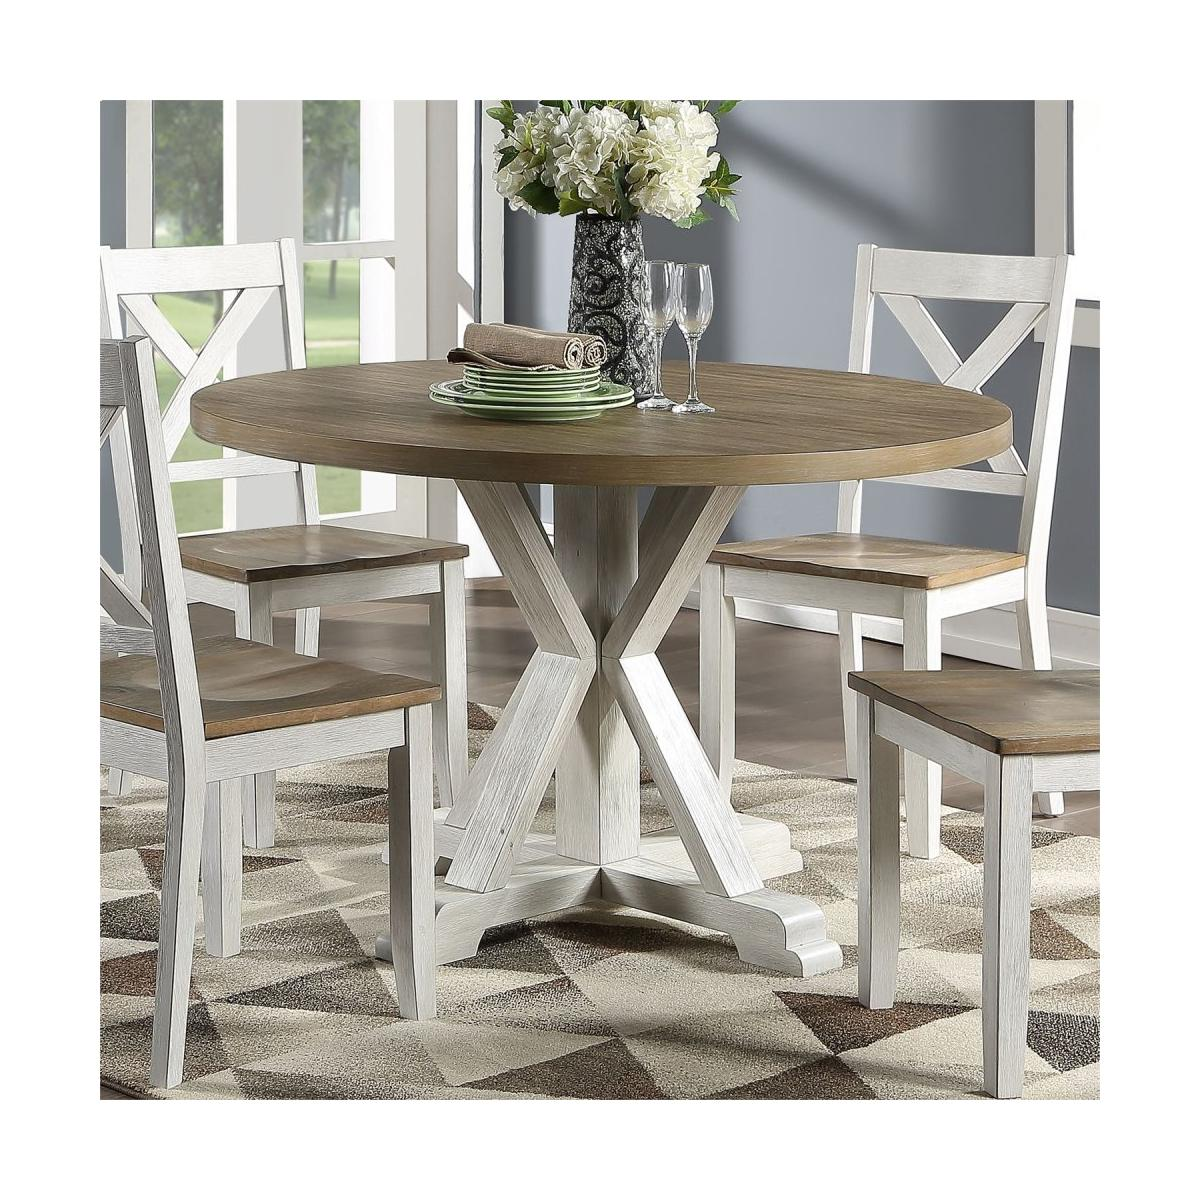 Single Pedestal Table- White